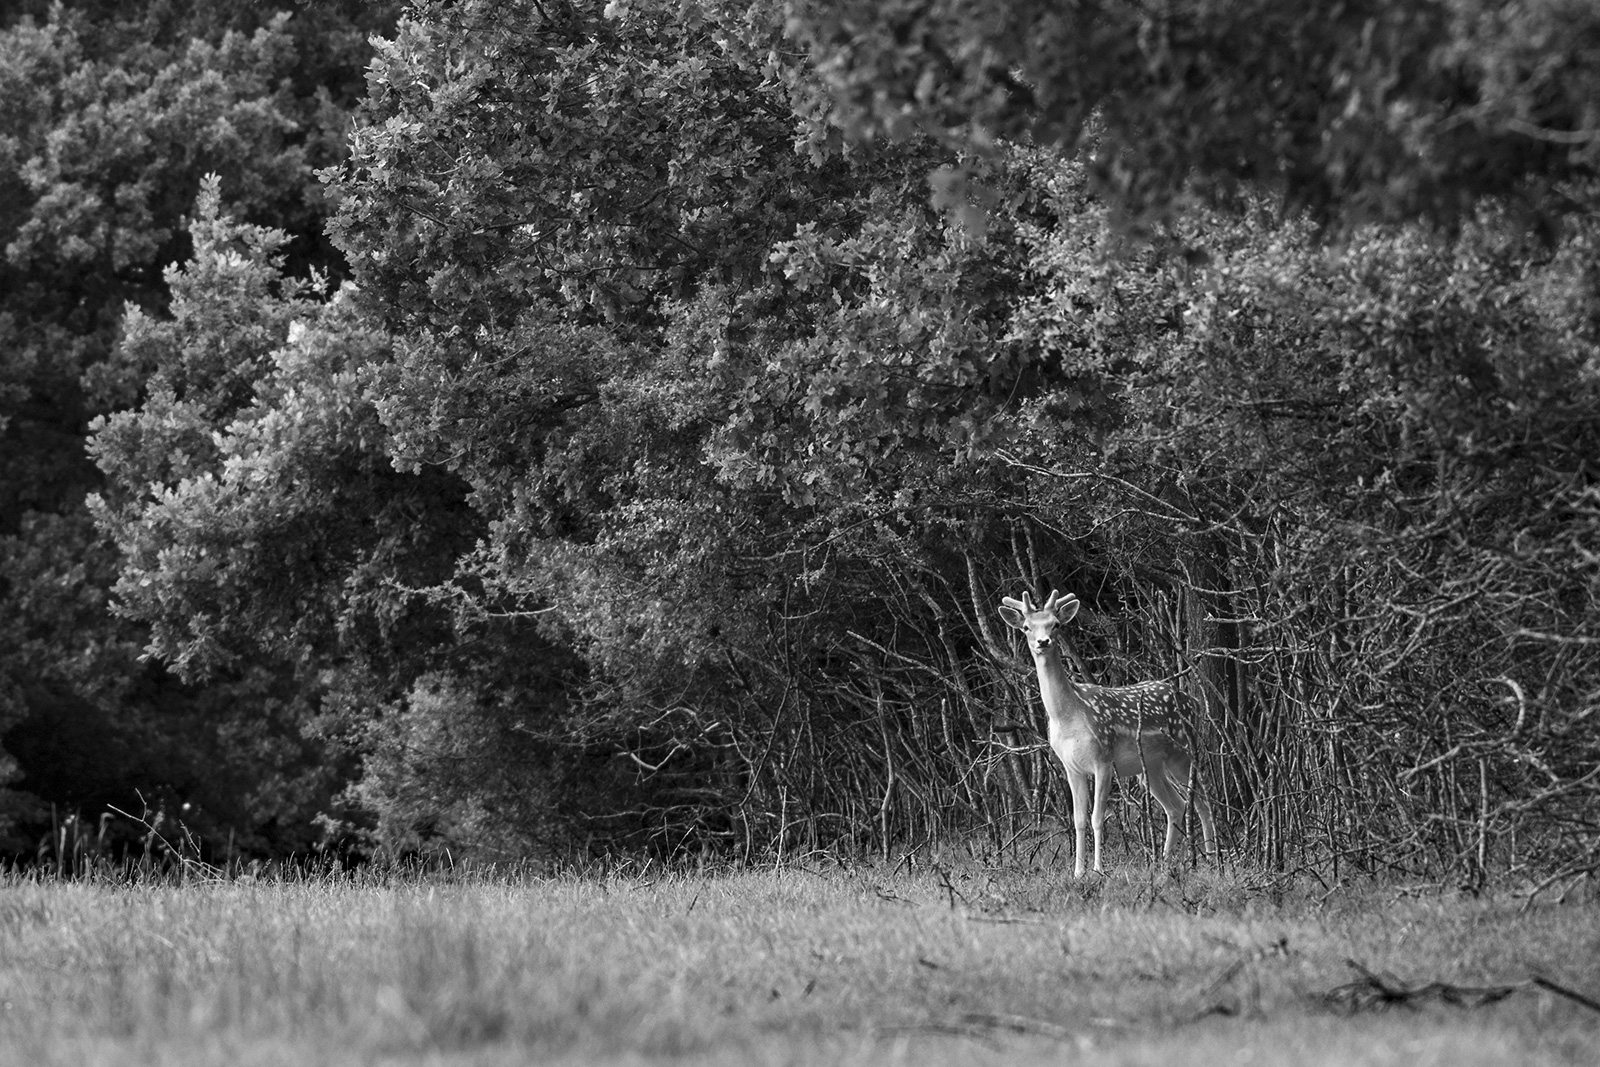 Fallow deer stag with green antlers standing by hedge in meadow grass, rural monochrome portrait Woodmancote West Sussex UK ©P. Maton 2019 eyeteeth.net